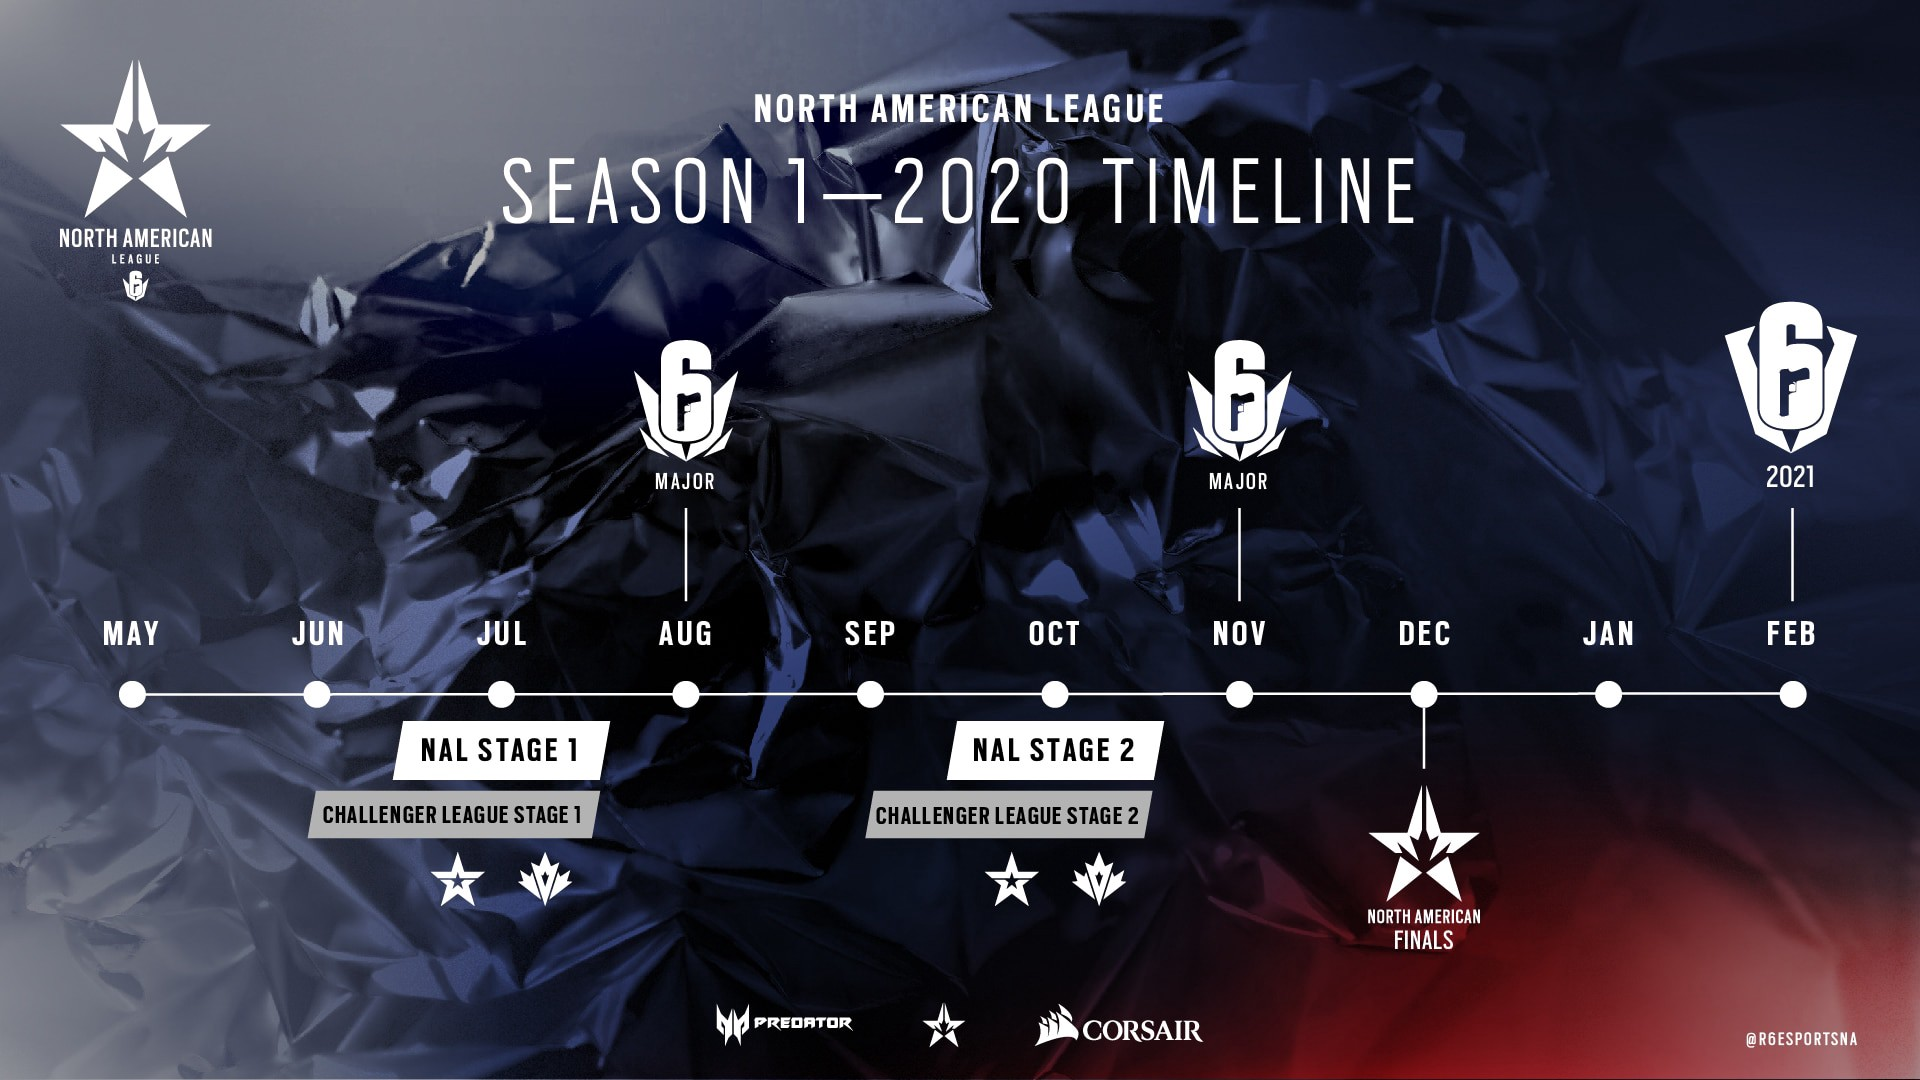 Rainbow Six: Siege esports North American League timeline for 2020 Season 1